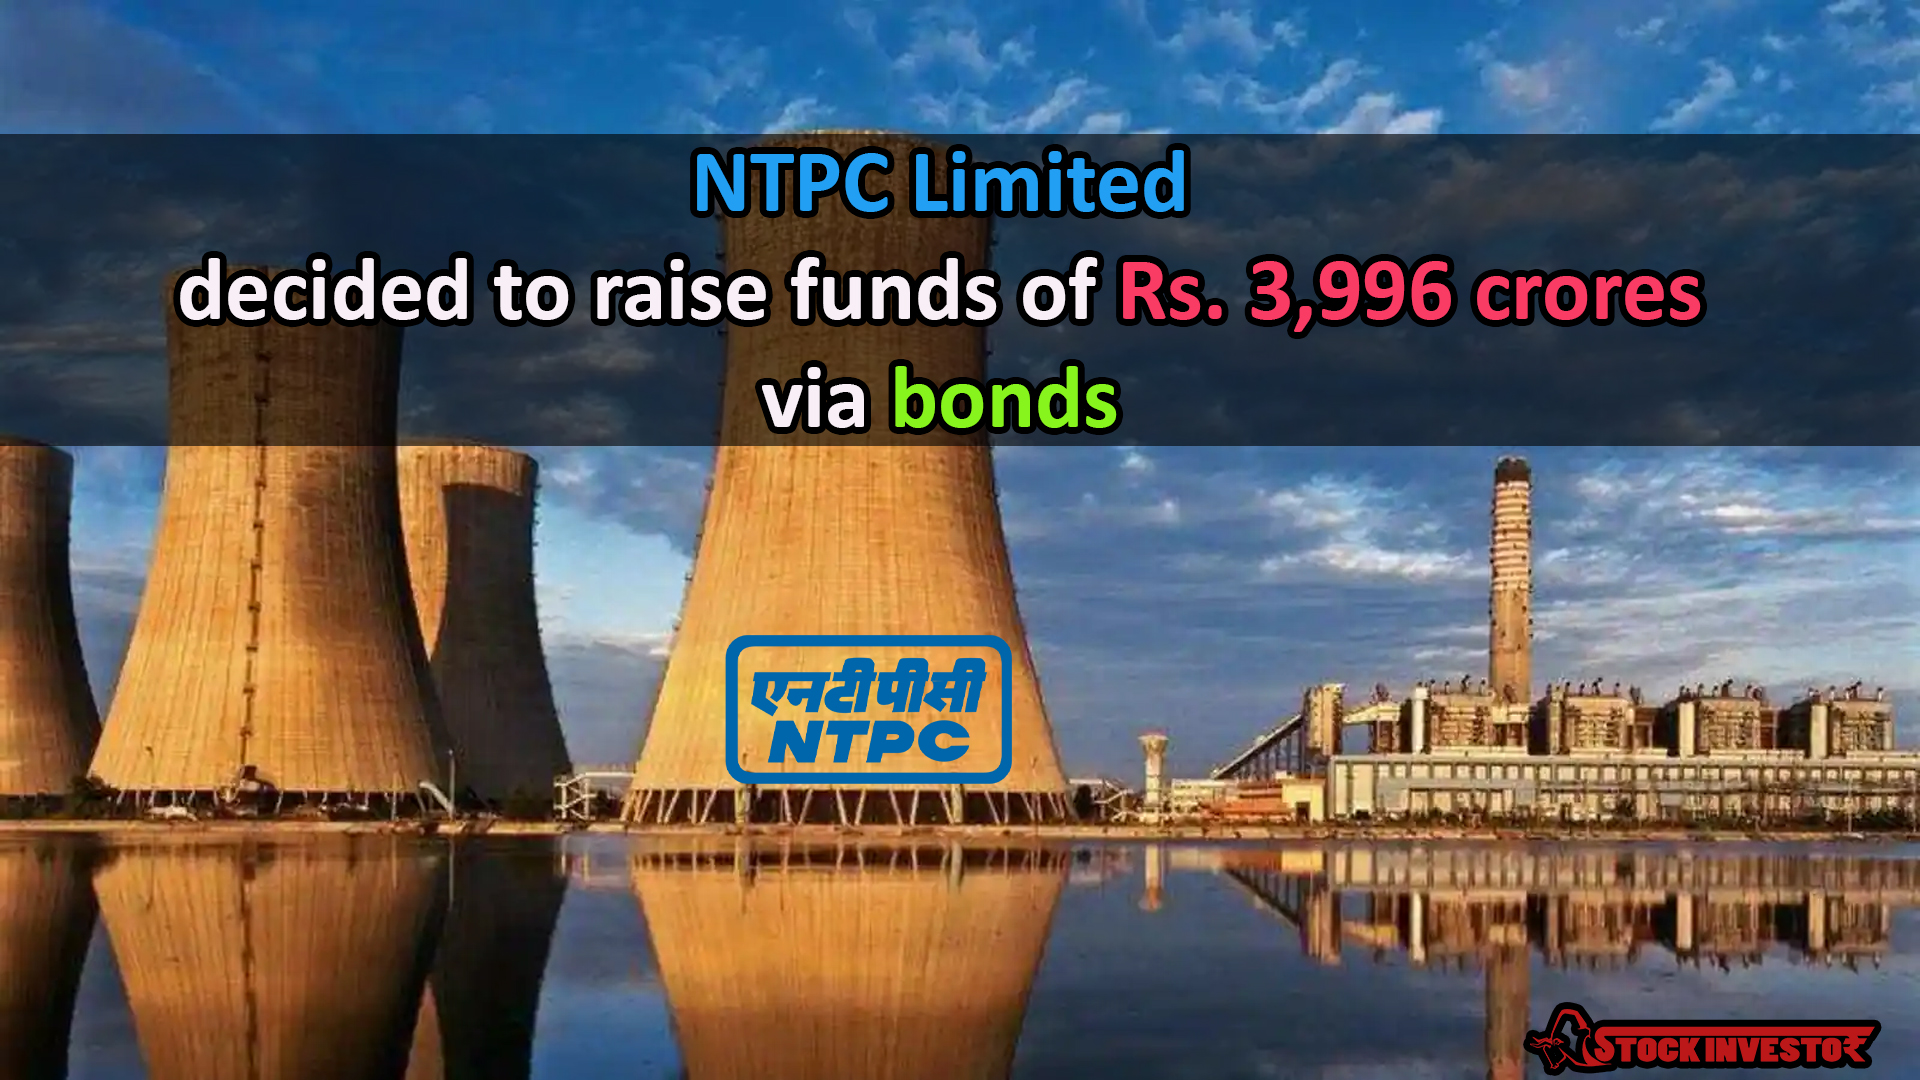 NTPC Limited decided to raise funds of Rs. 3,996 crores via bonds